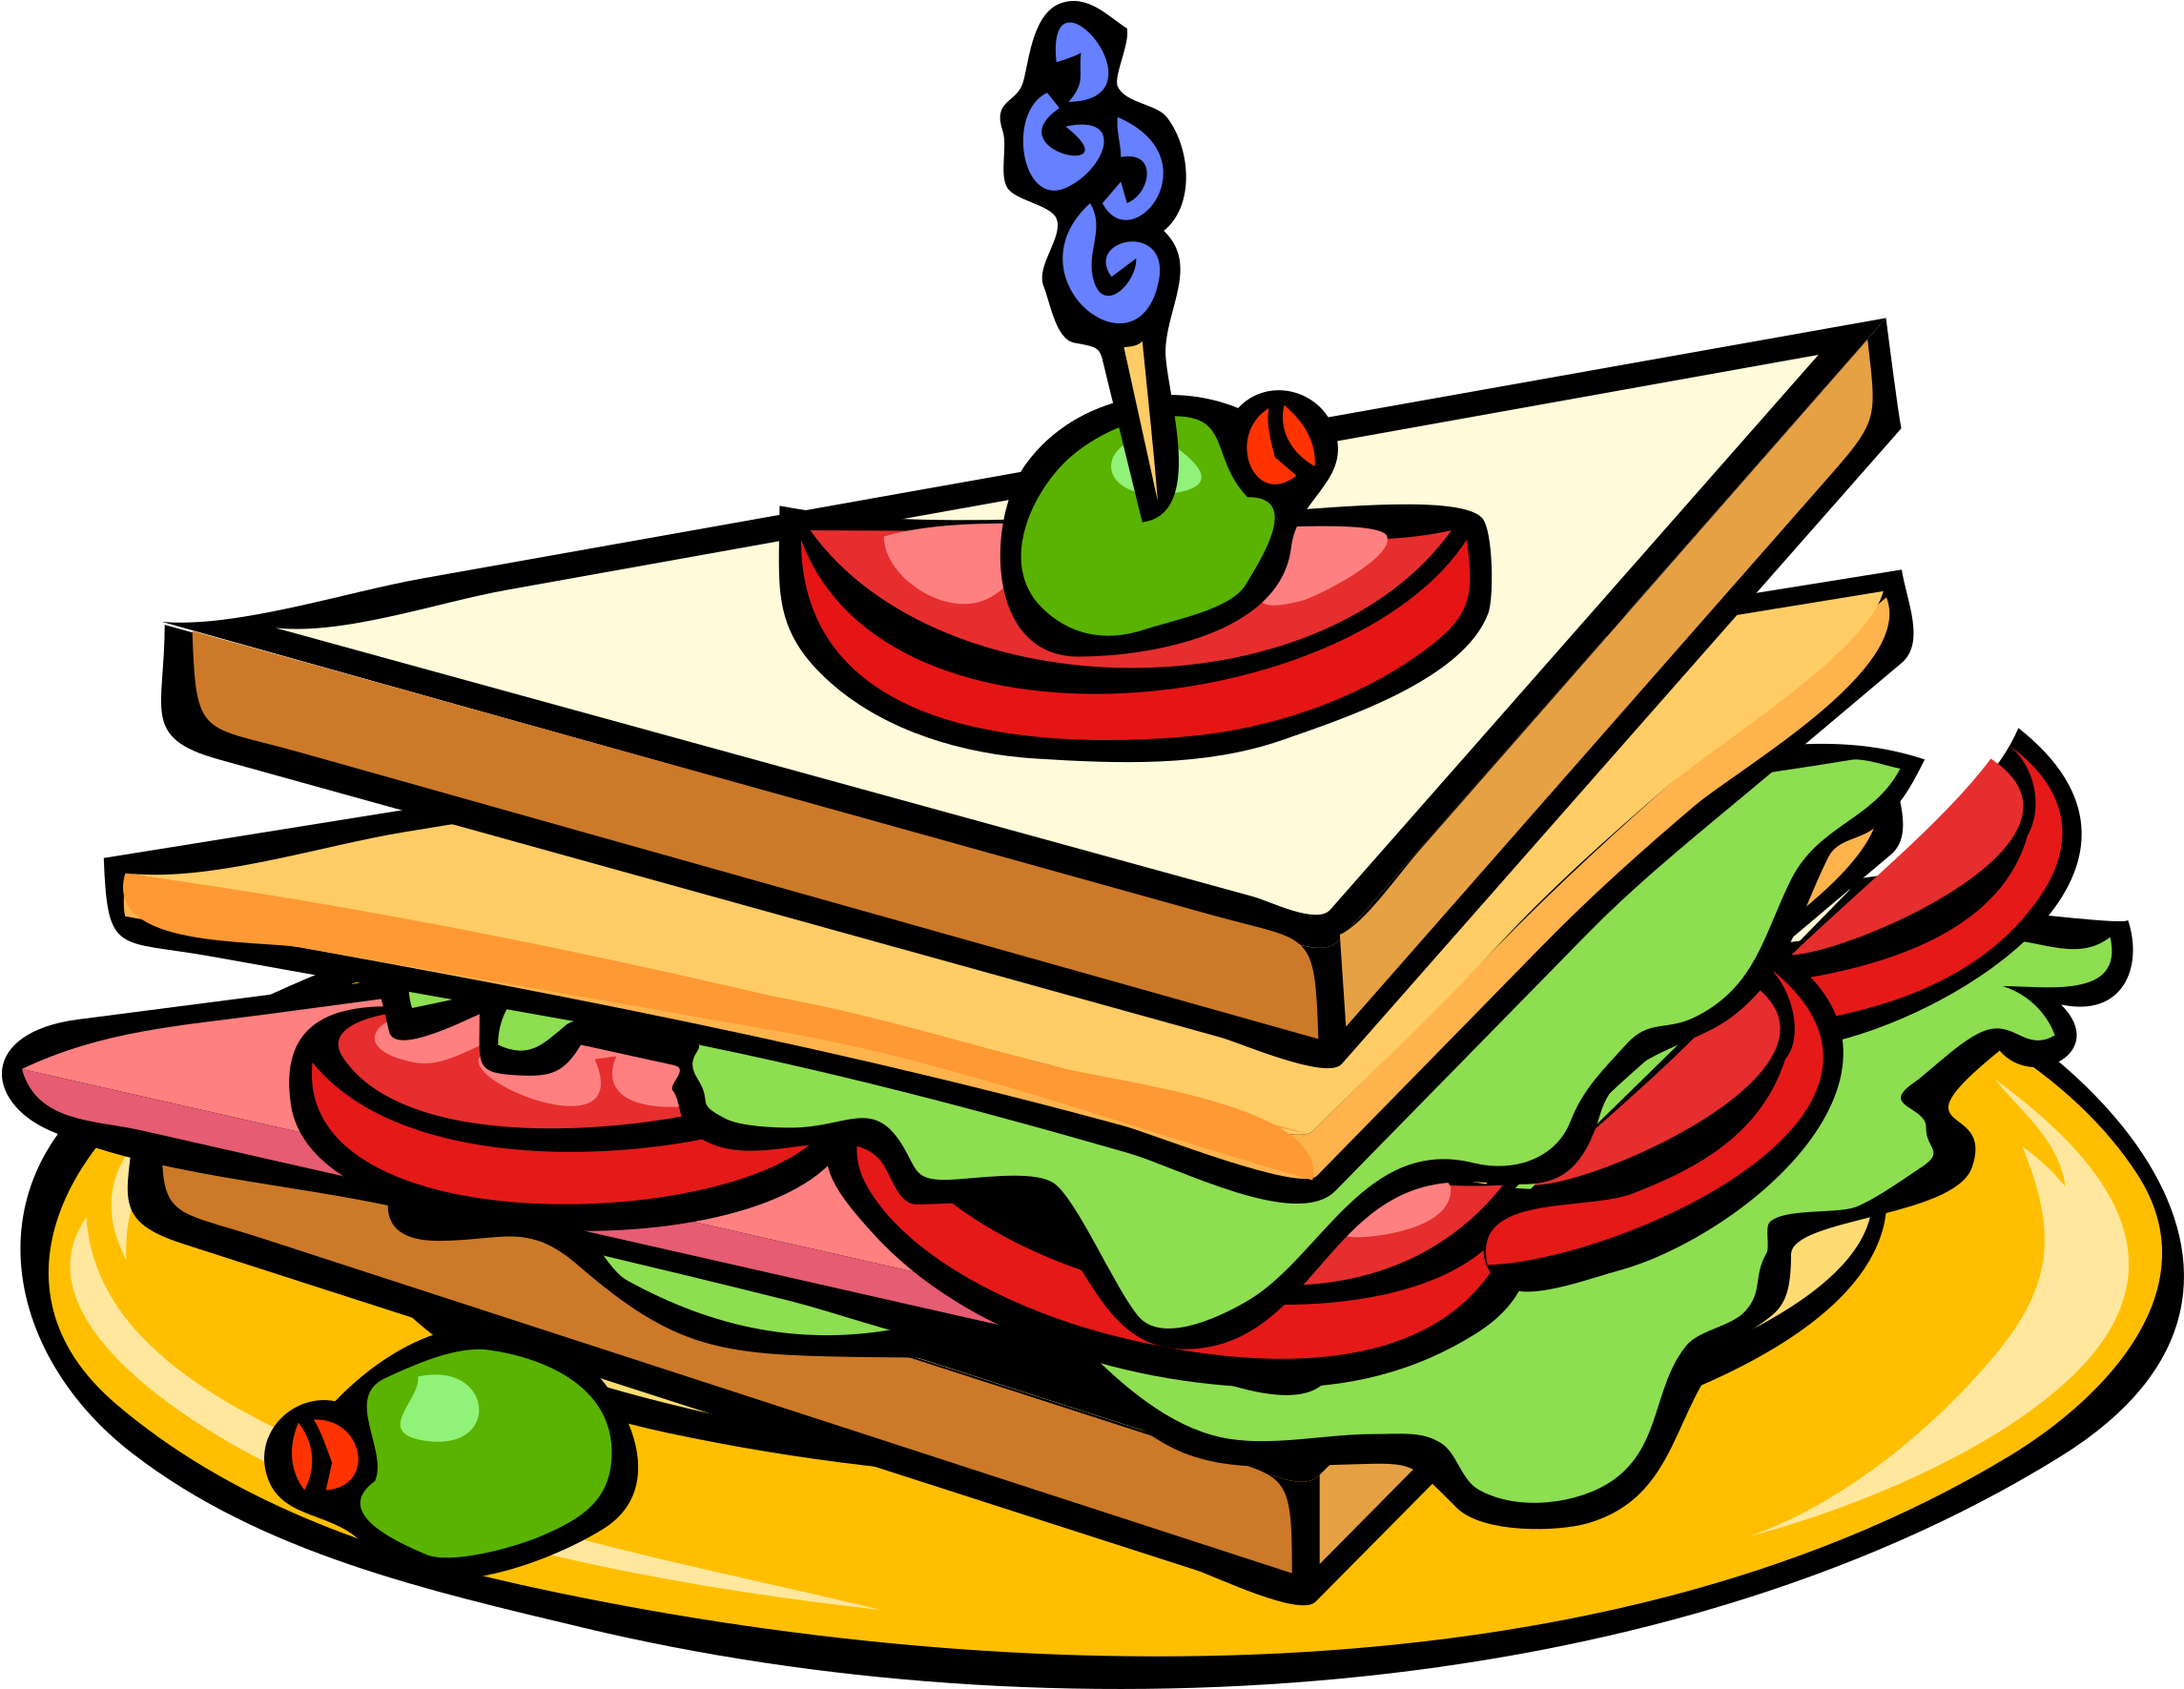 2-25587_meal-clipart-deli-sandwich-clipart-png-download.png